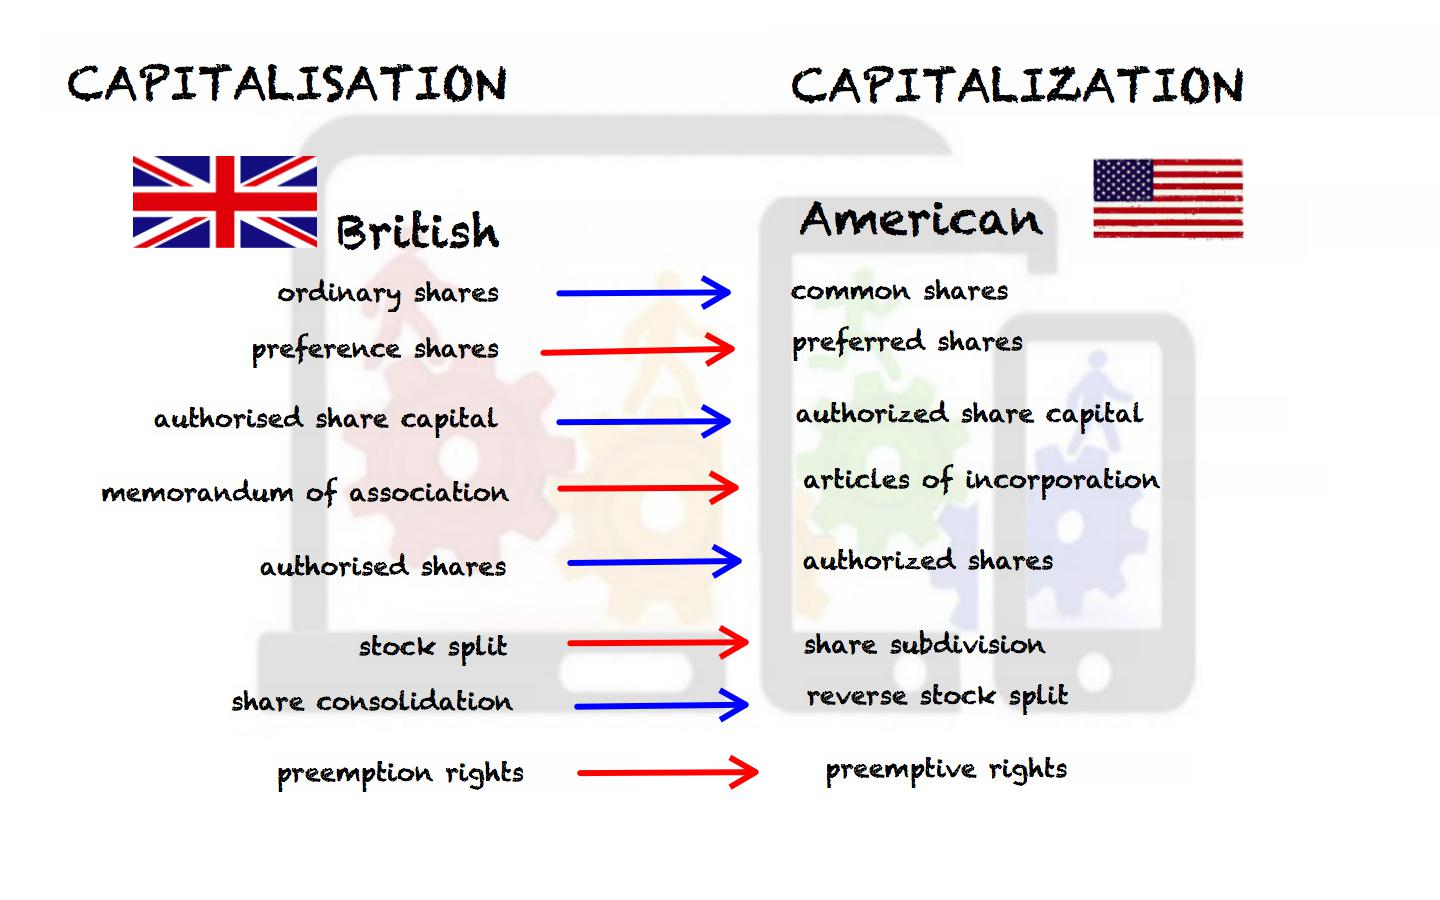 ILEC+unit+3+-+capitalisation+British+American+capitalization.jpg